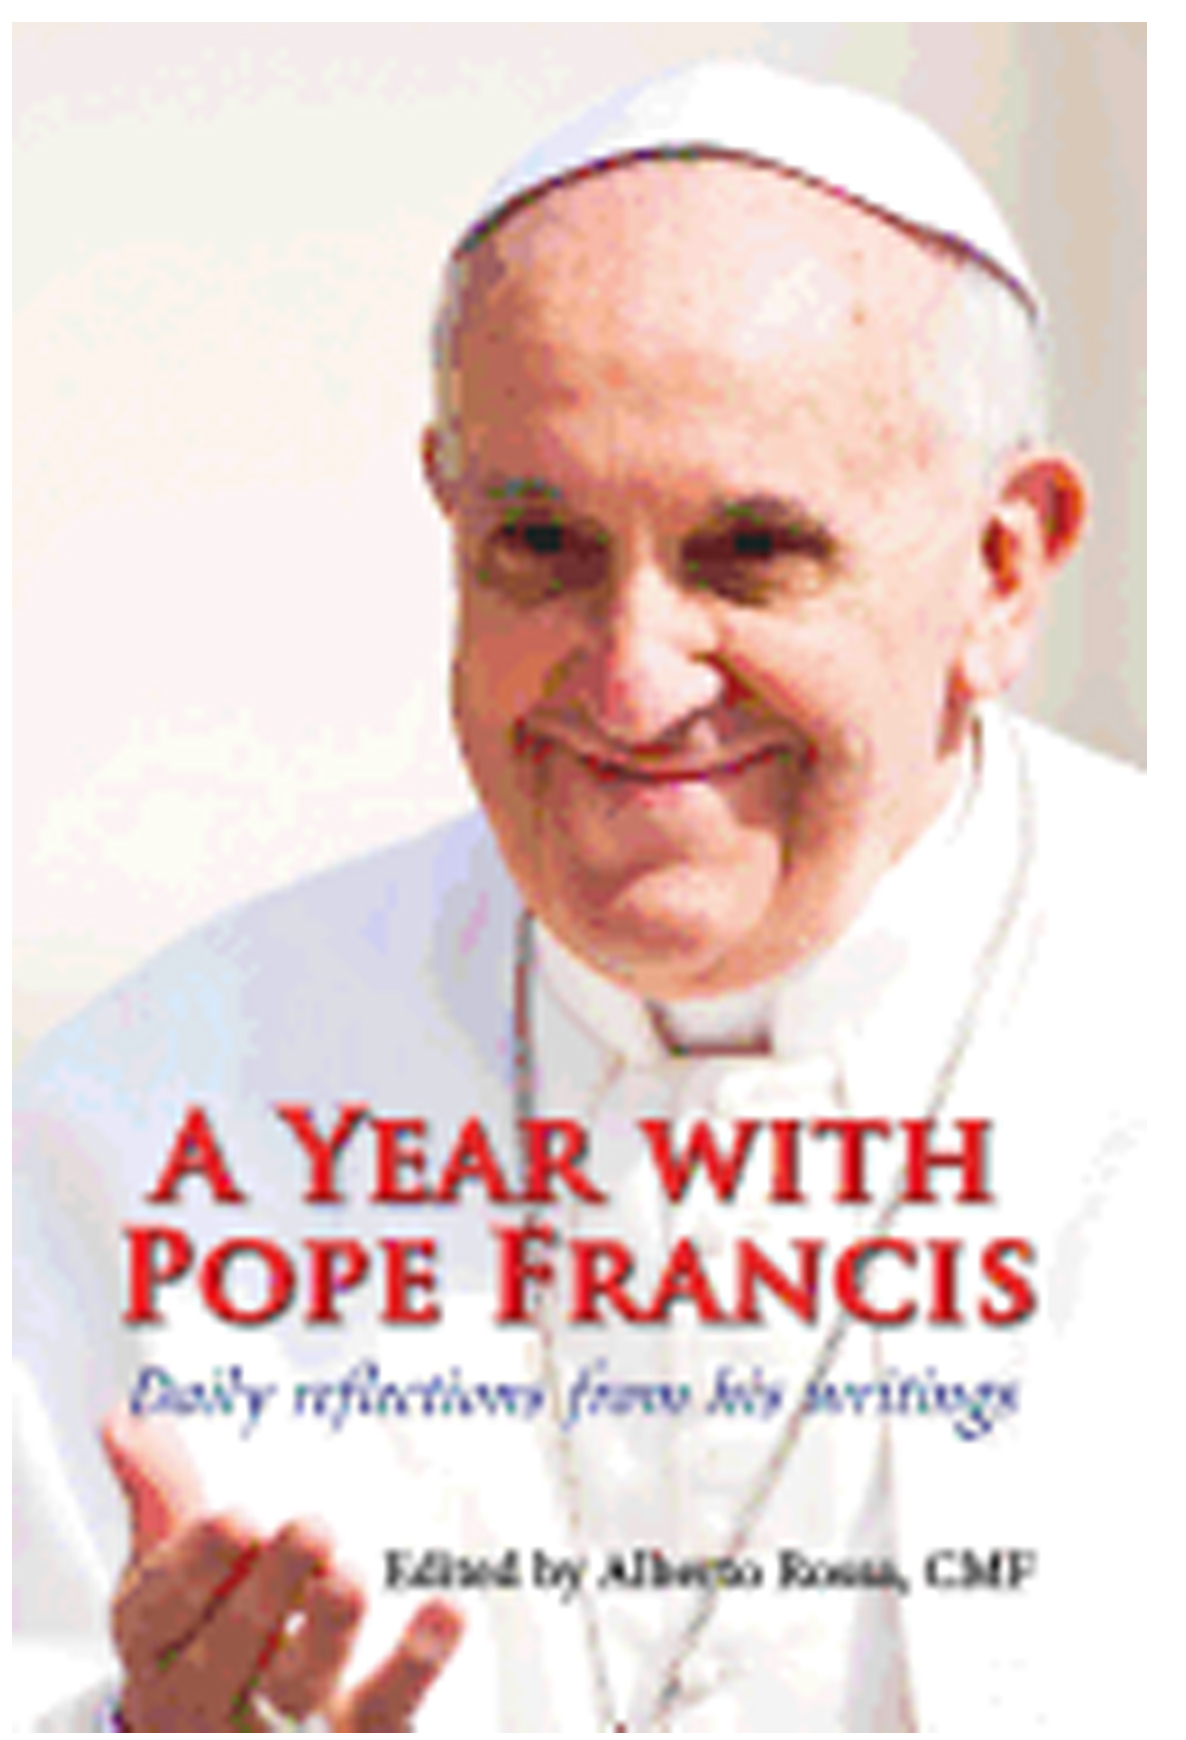 A Year With Pope Francis: Daily reflections from his writings by Alberto Rossa 108-9780809148899